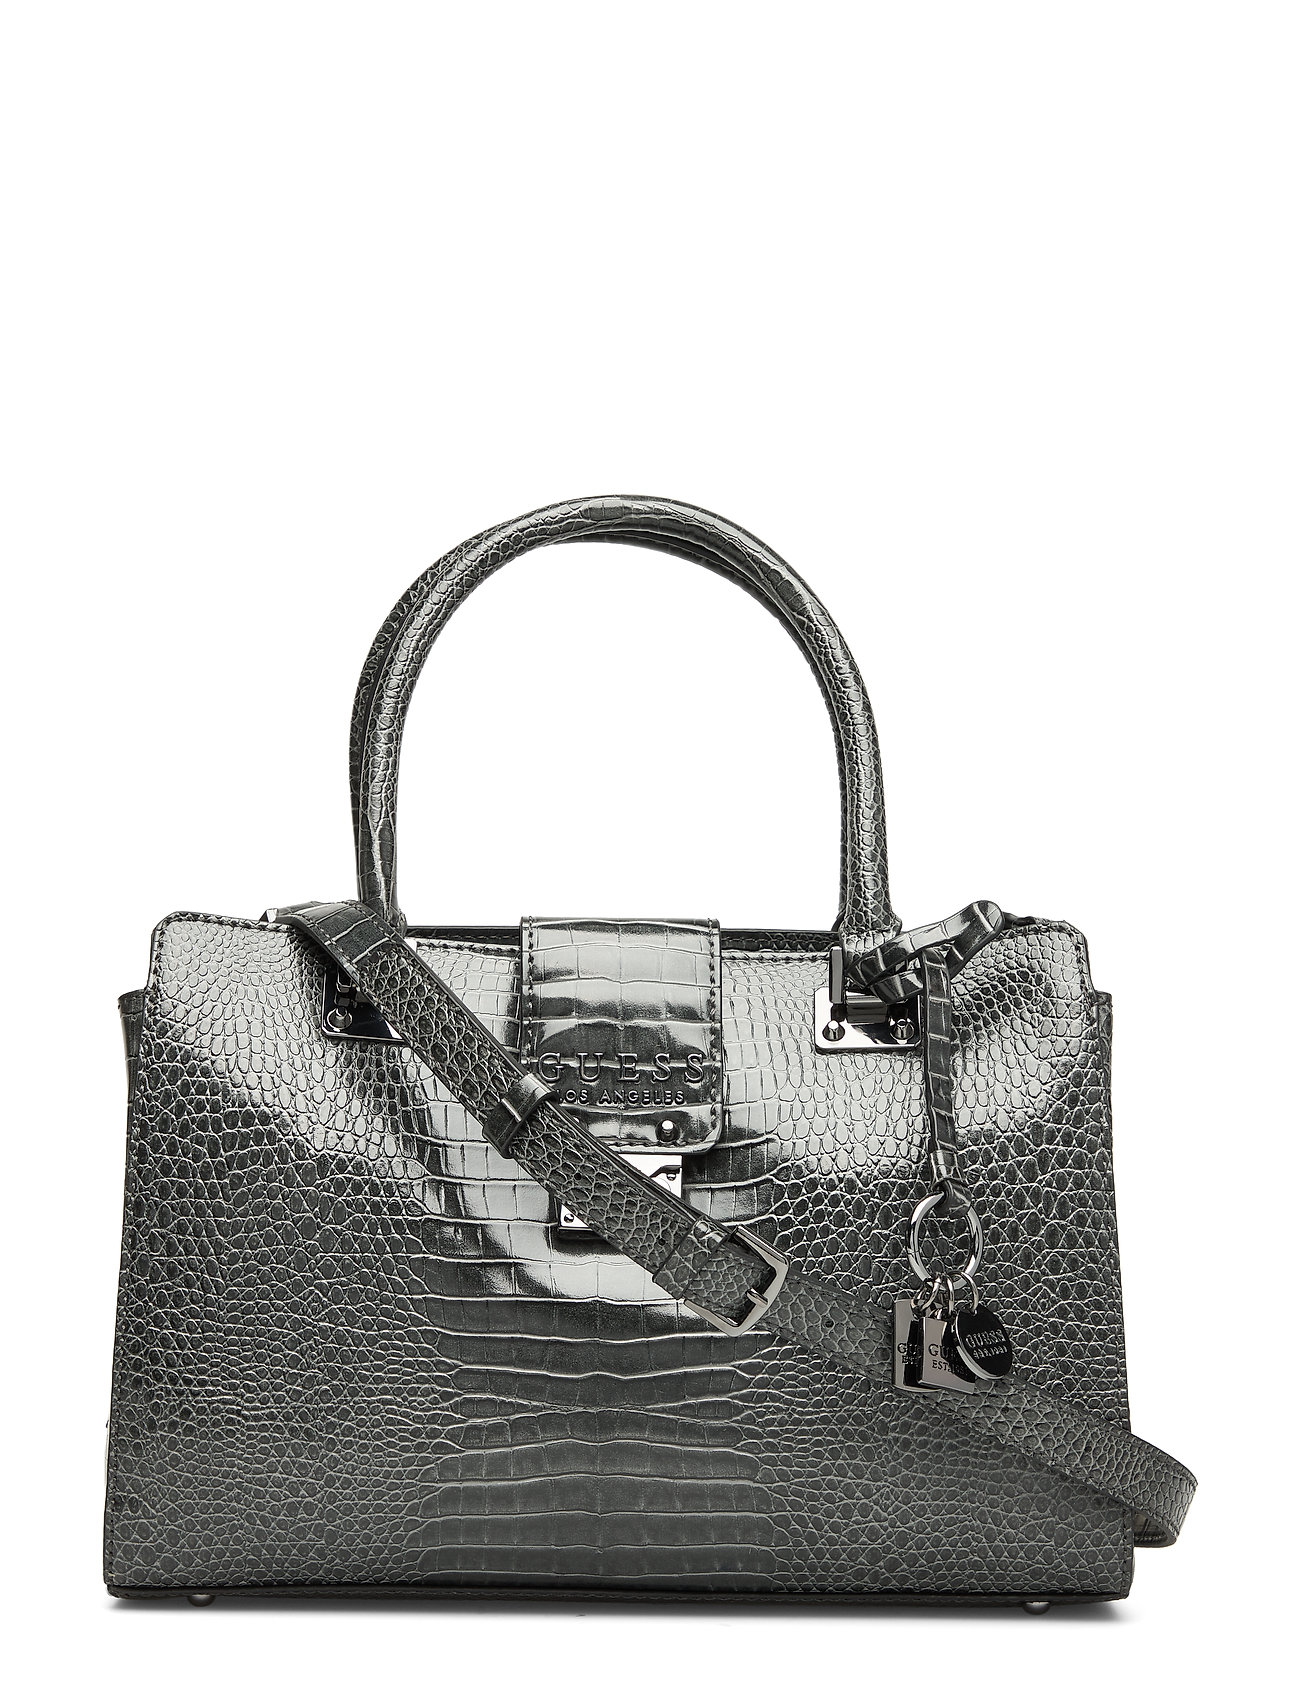 GUESS CLEO GIRLFRIEND SATCHEL - GRAPHITE